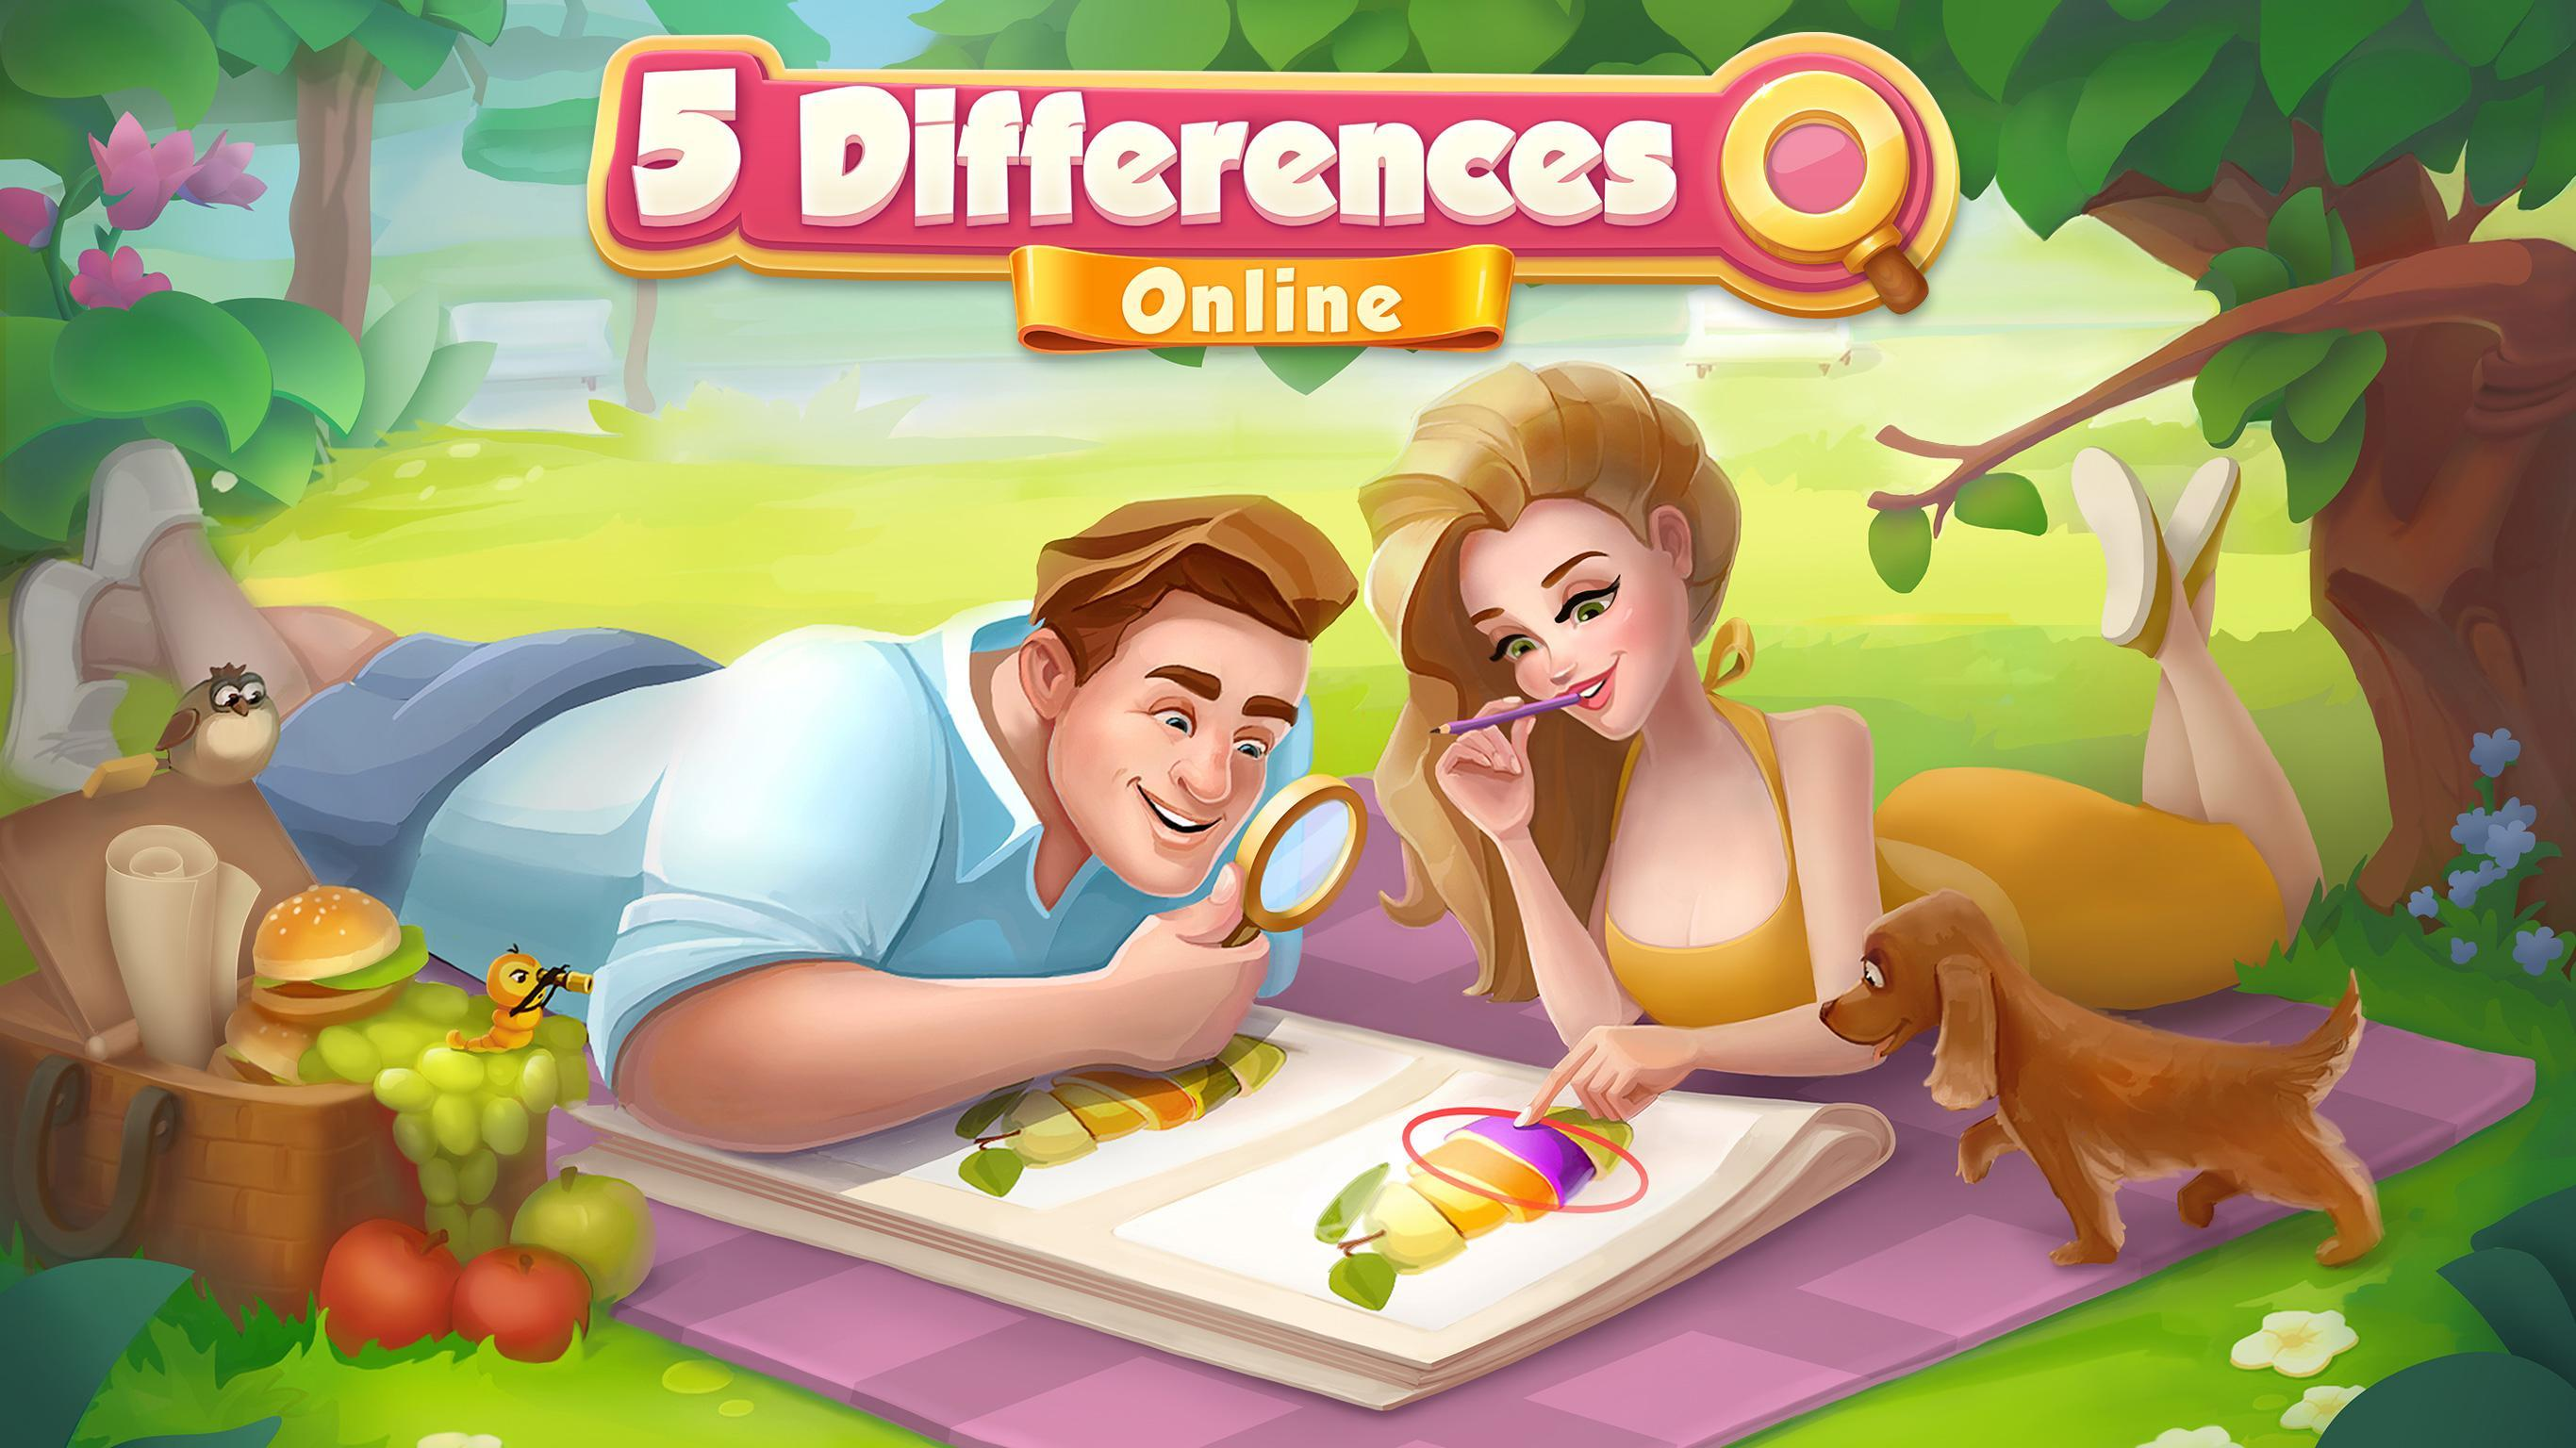 5 Differences poster